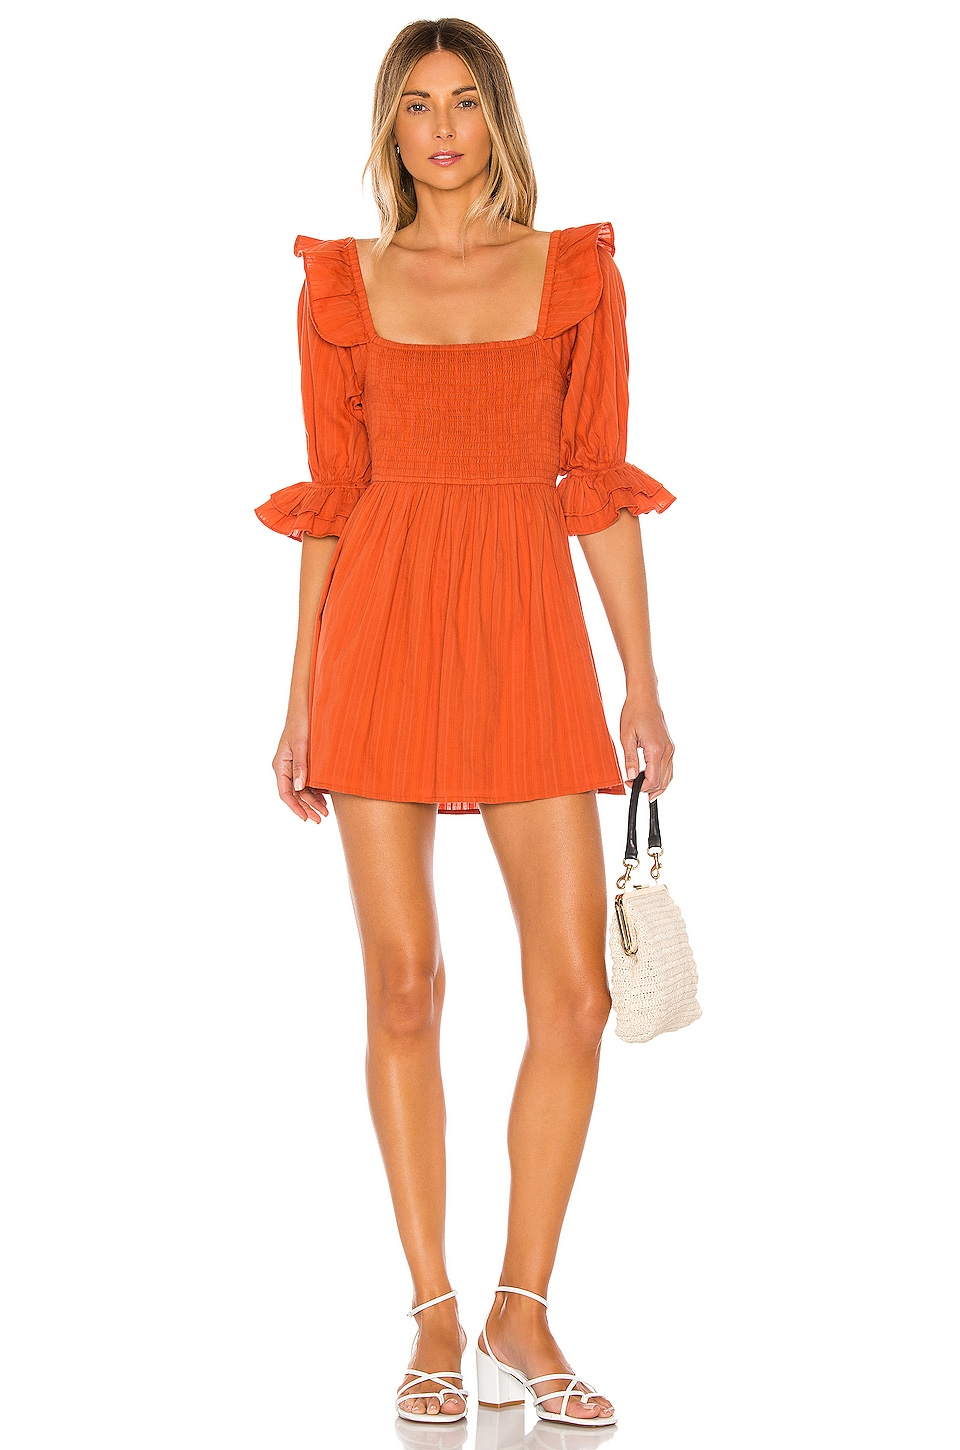 MAJORELLE Abrielle Mini Dress in Rust Orange